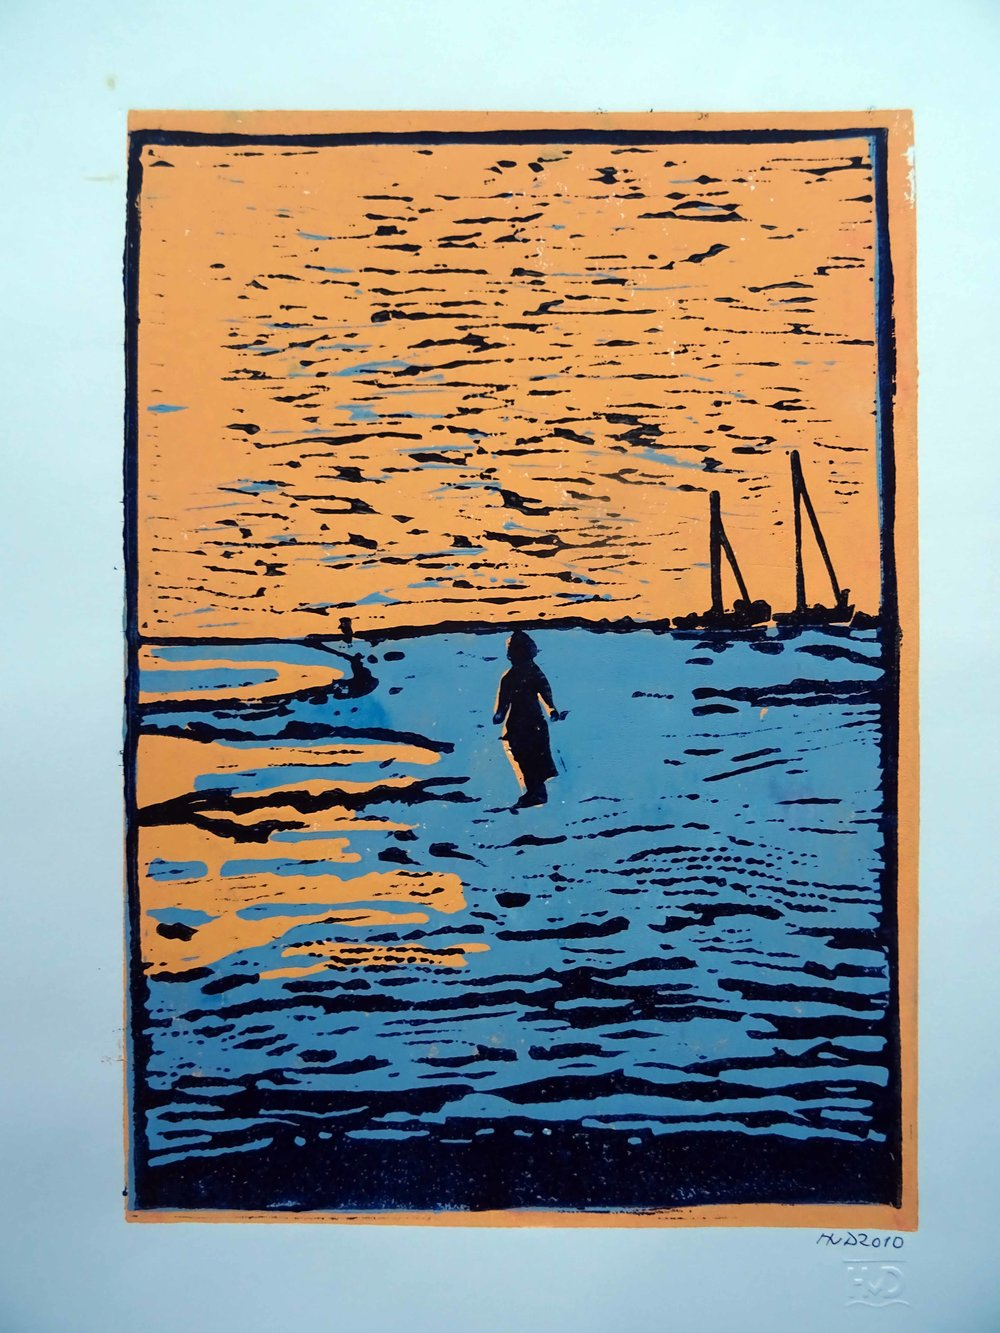 44 - Grands sables, 3-plate lino 30x21 cm, 80 €